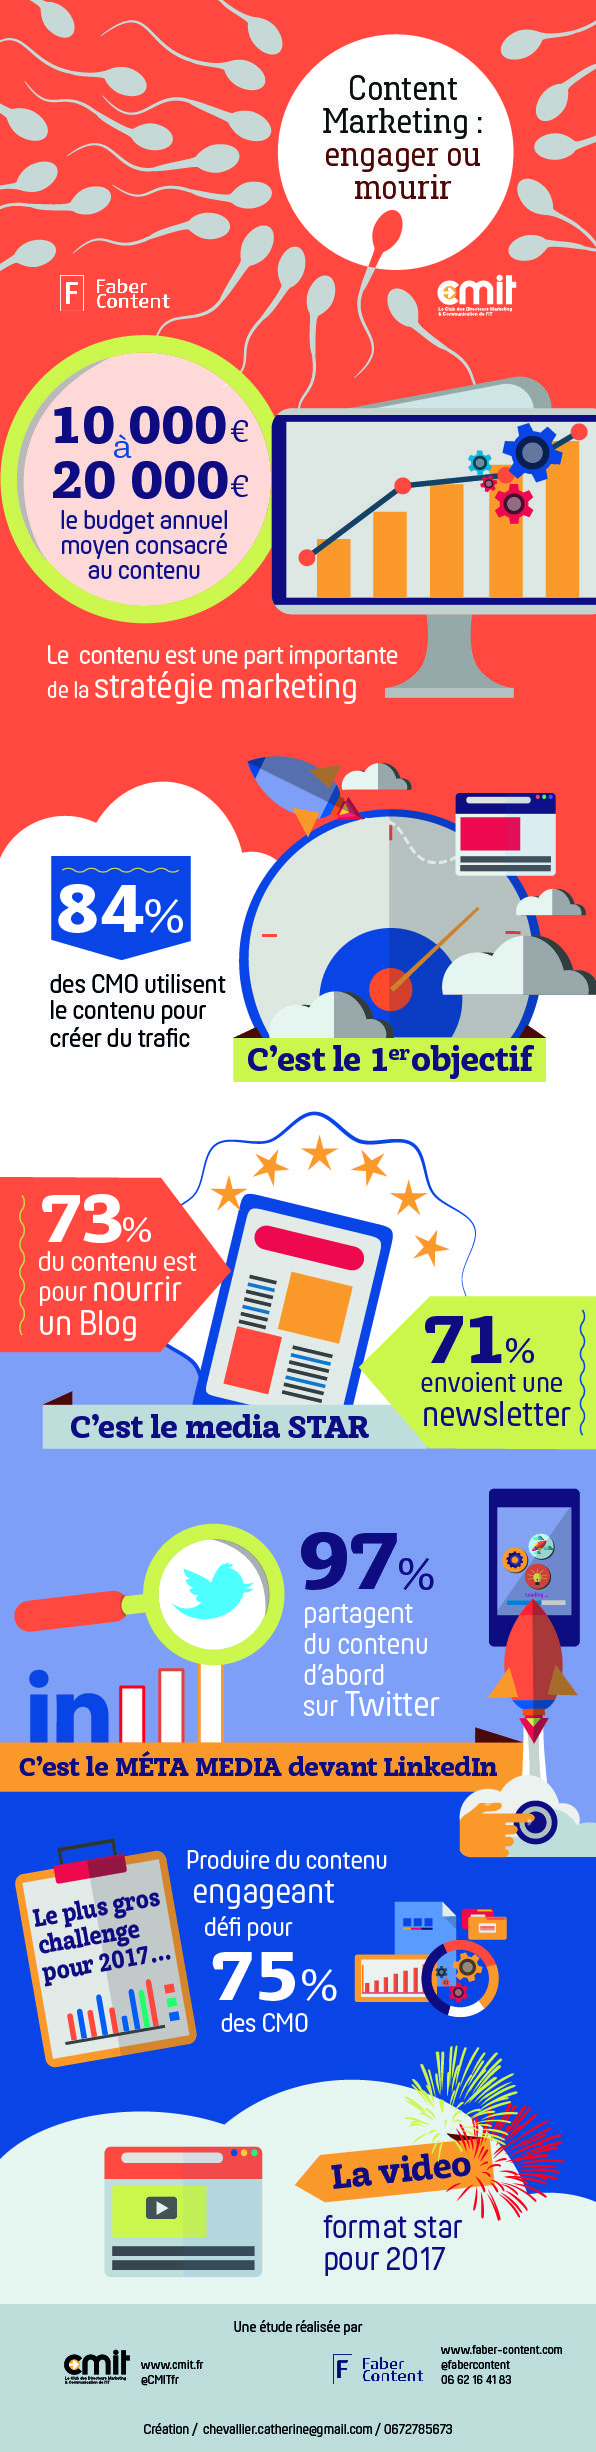 INFOGRAPHIE-CMIT_Faber-Content engager ou mourir